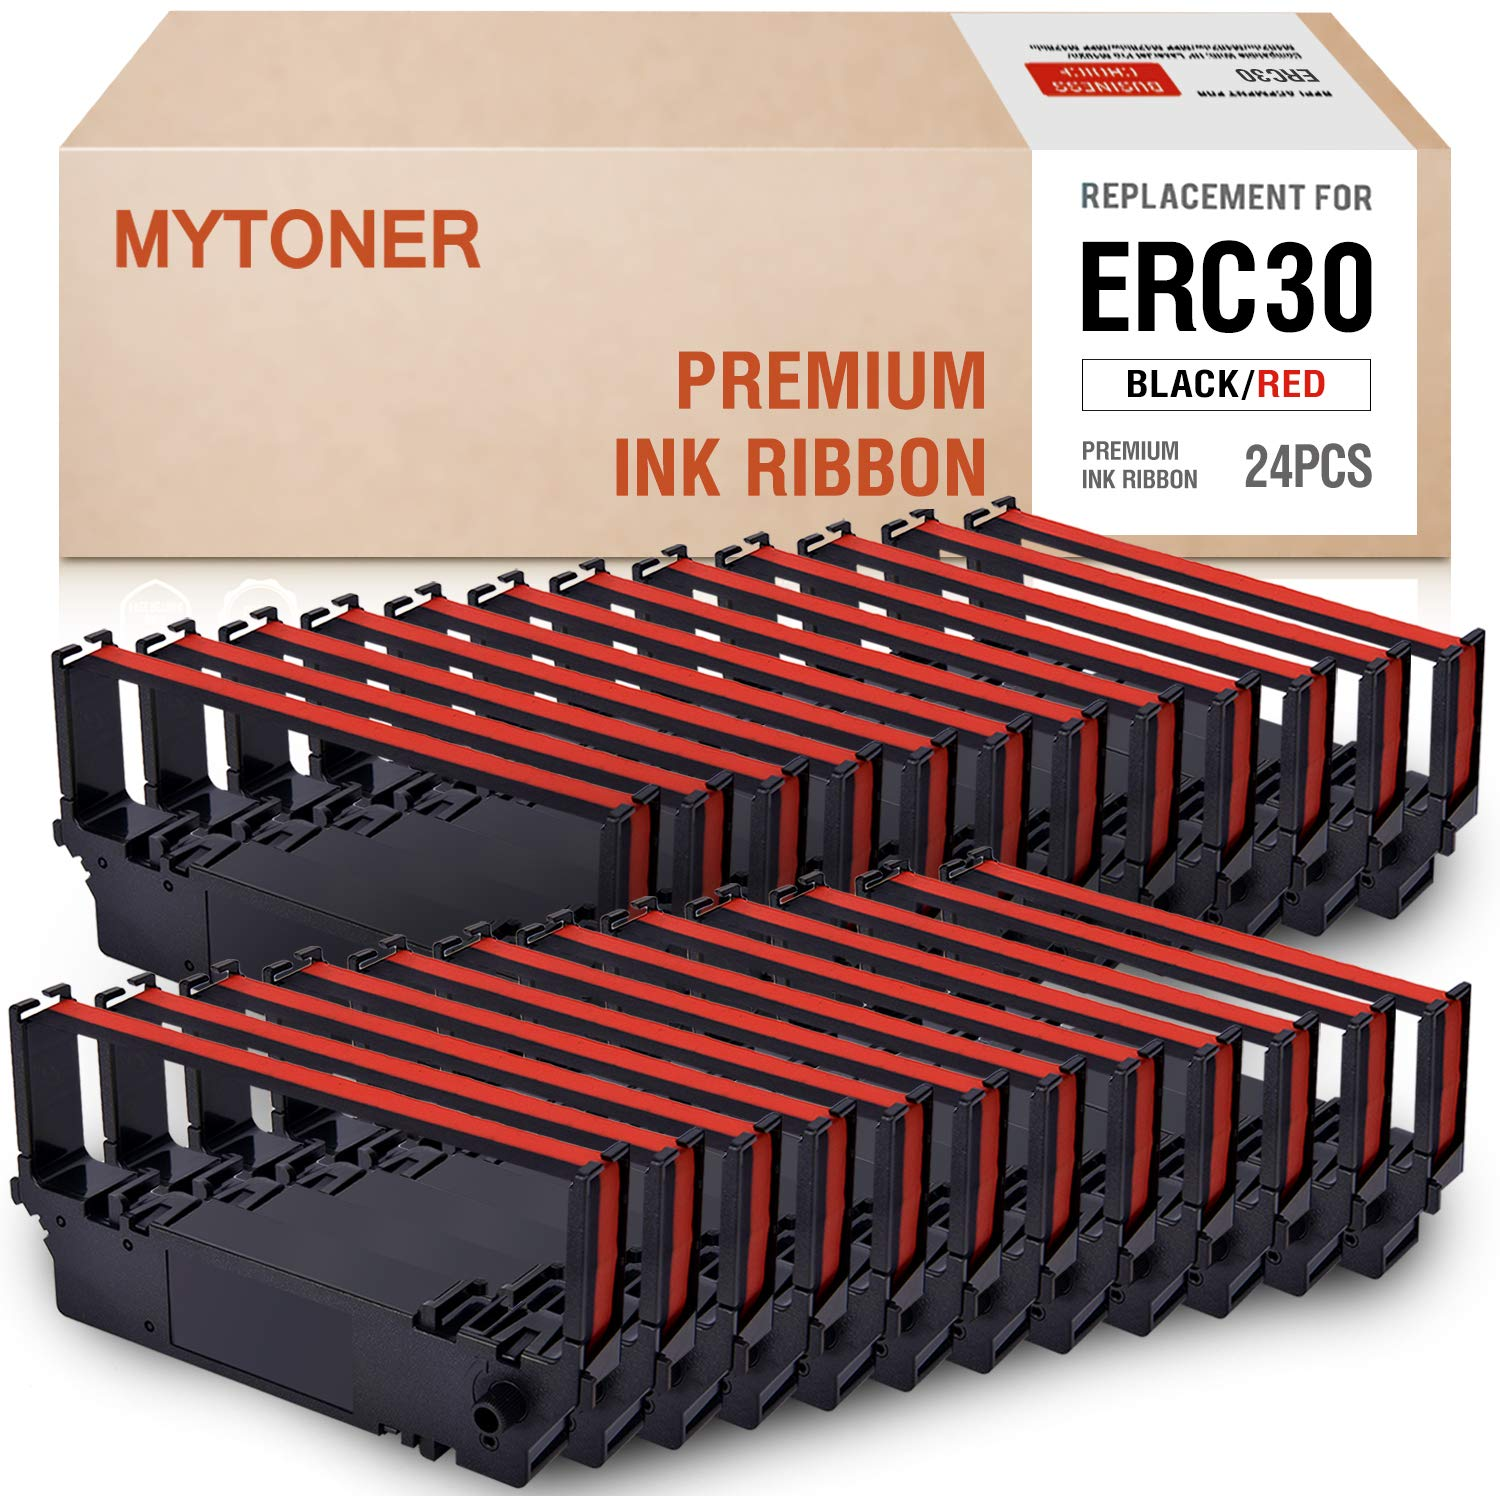 MYTONER ERC30 ERC-30 ERC 30/34/38 B/R Black/red Compatible with Ink Ribbon Cartridge for use in Epson ERC38 NK506 (24-Pack) by MYTONER